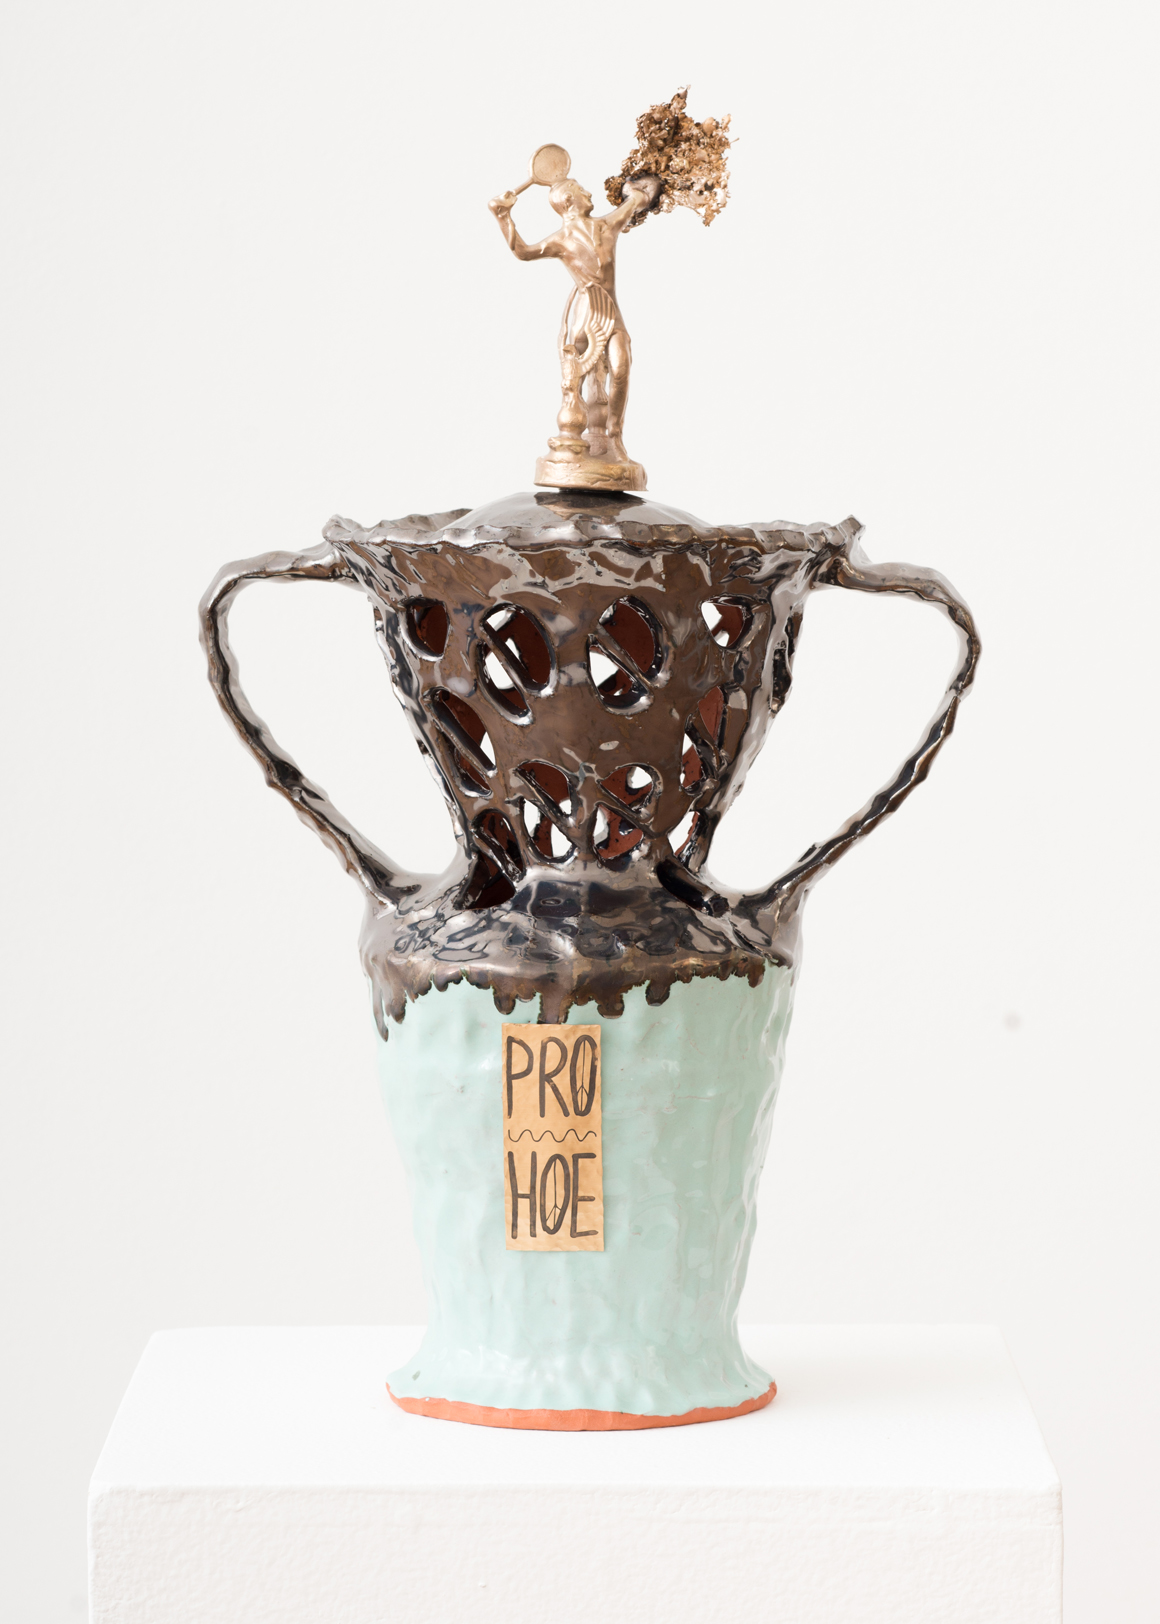 "<p><span class=""name"">Stephanie Kantor</span><br><em>Trophy (Pro Hoe)</em><span class='media'>Earthenware, glaze, bronze, brass</span>18 x 11.5 x 7.5 in (45.7 x 29.2 x 19.1 cm)<br>2018<br><a class='inquire' href='mailto:info@gildargallery.com?subject=Artwork Inquiry SKAN0007&body=I am interested in finding out more about Trophy (Pro Hoe) by Stephanie Kantor'>Inquire</a></p>"